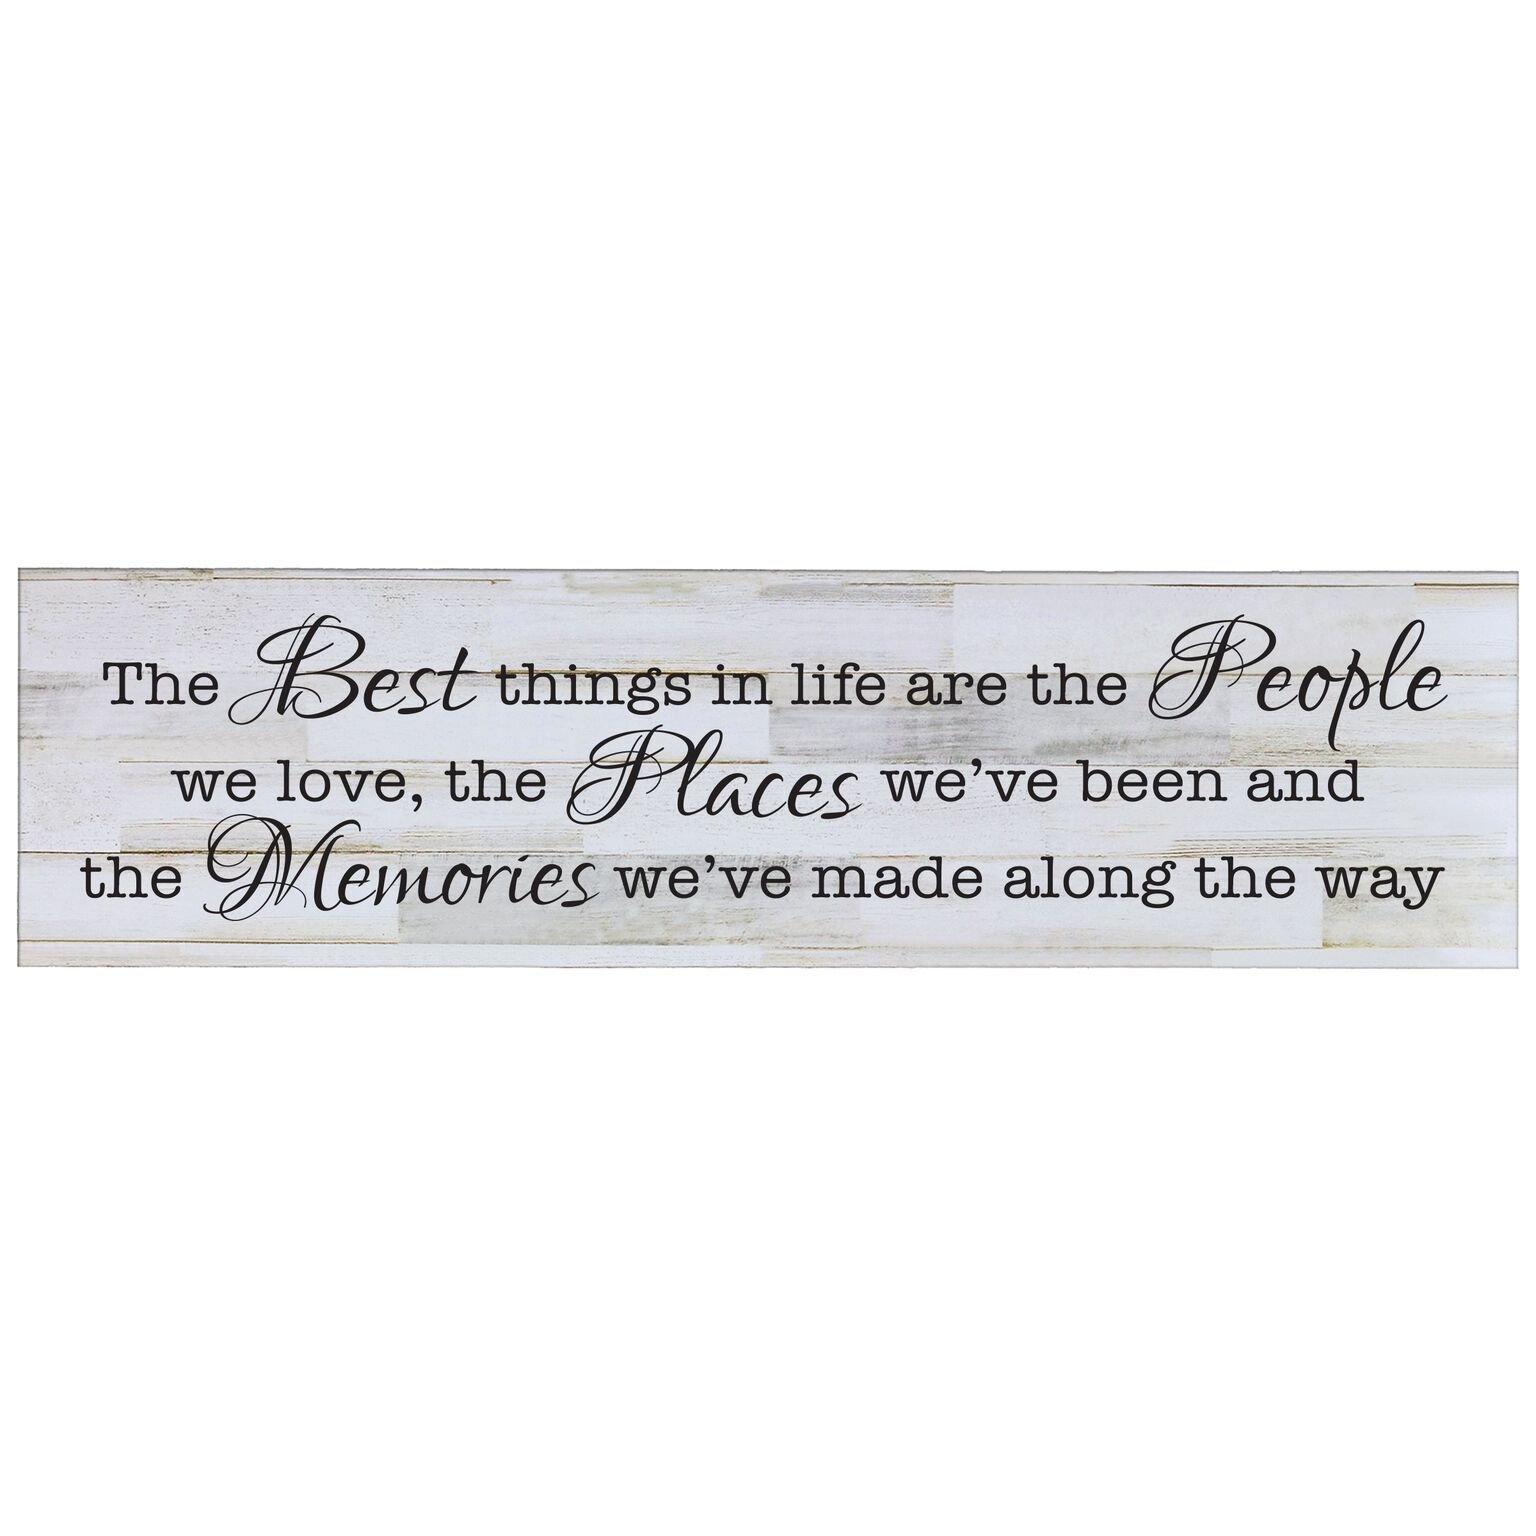 LifeSong Milestones The Best Things in Life are The People, Decorative Wall Art Decor Sign for Living Room, Entryway, Kitchen, Bedroom,Office, Wedding Idea (Distressed White Plank)